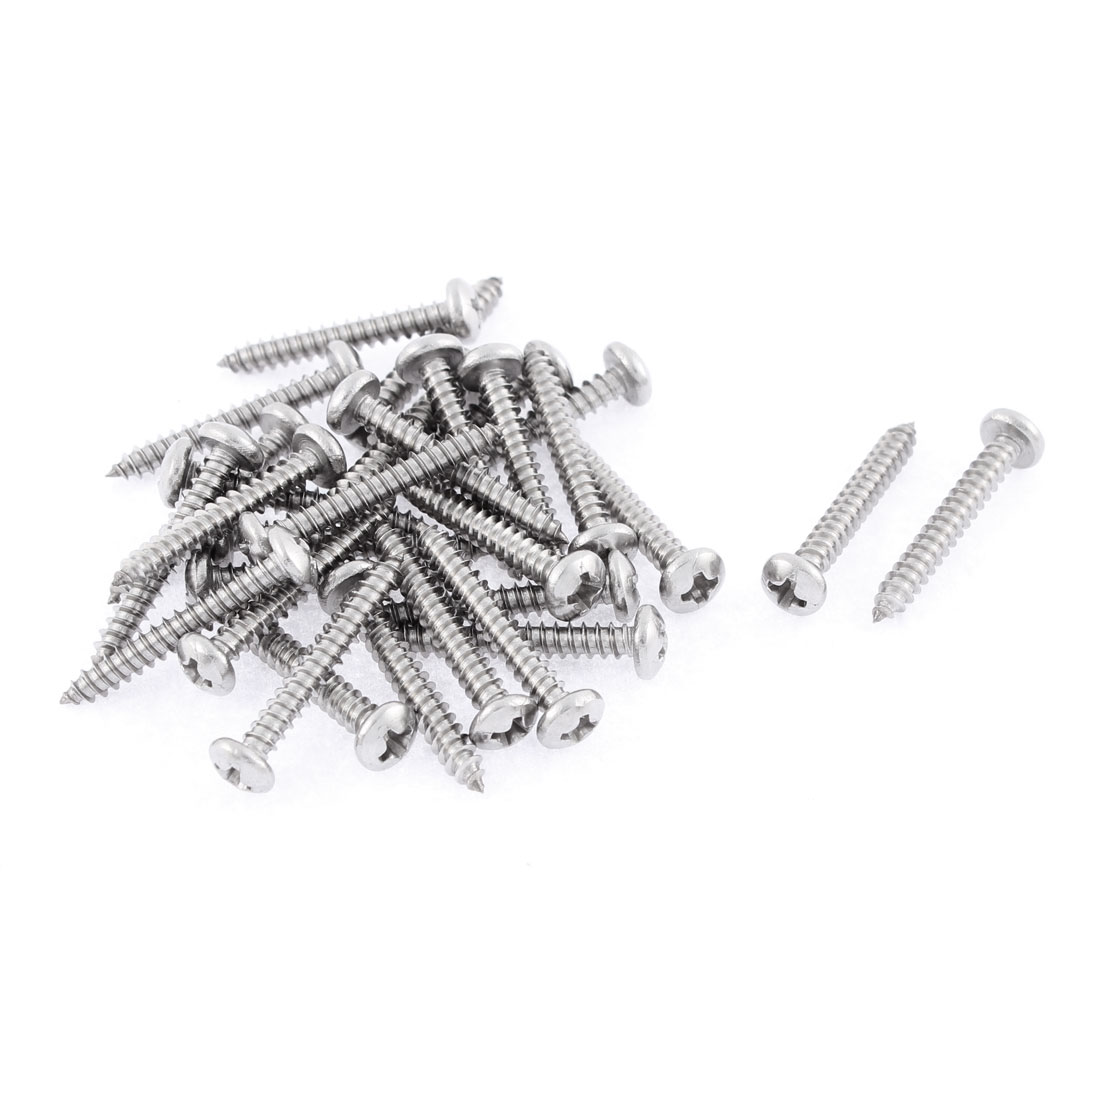 30 Pcs 3.5mmx25mm Stainless Steel Phillips Round Head Sheet Self Tapping Screws